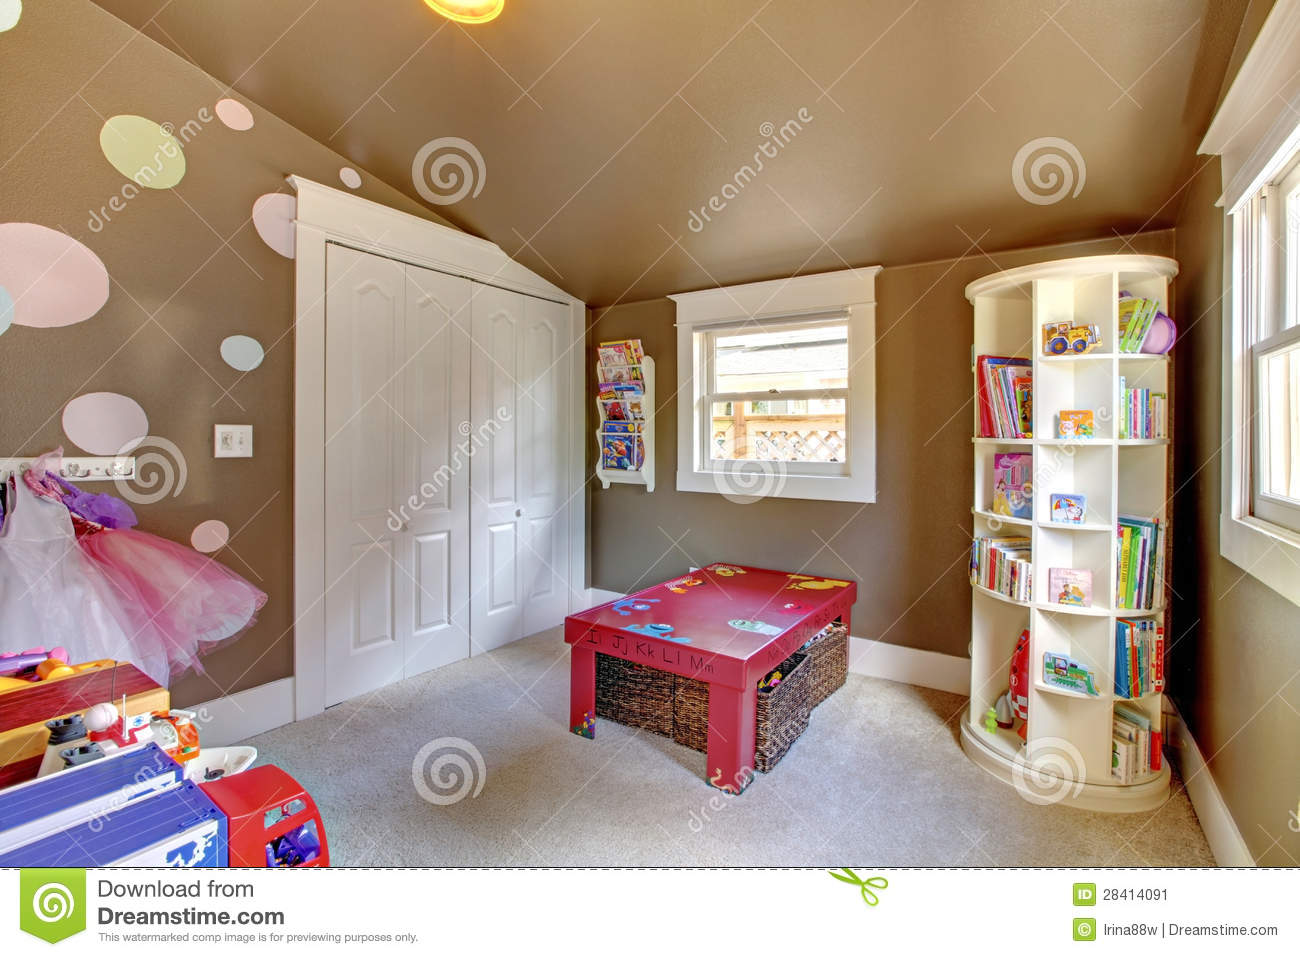 Kids Room With Toys kids room interior stock vector - image: 54709143